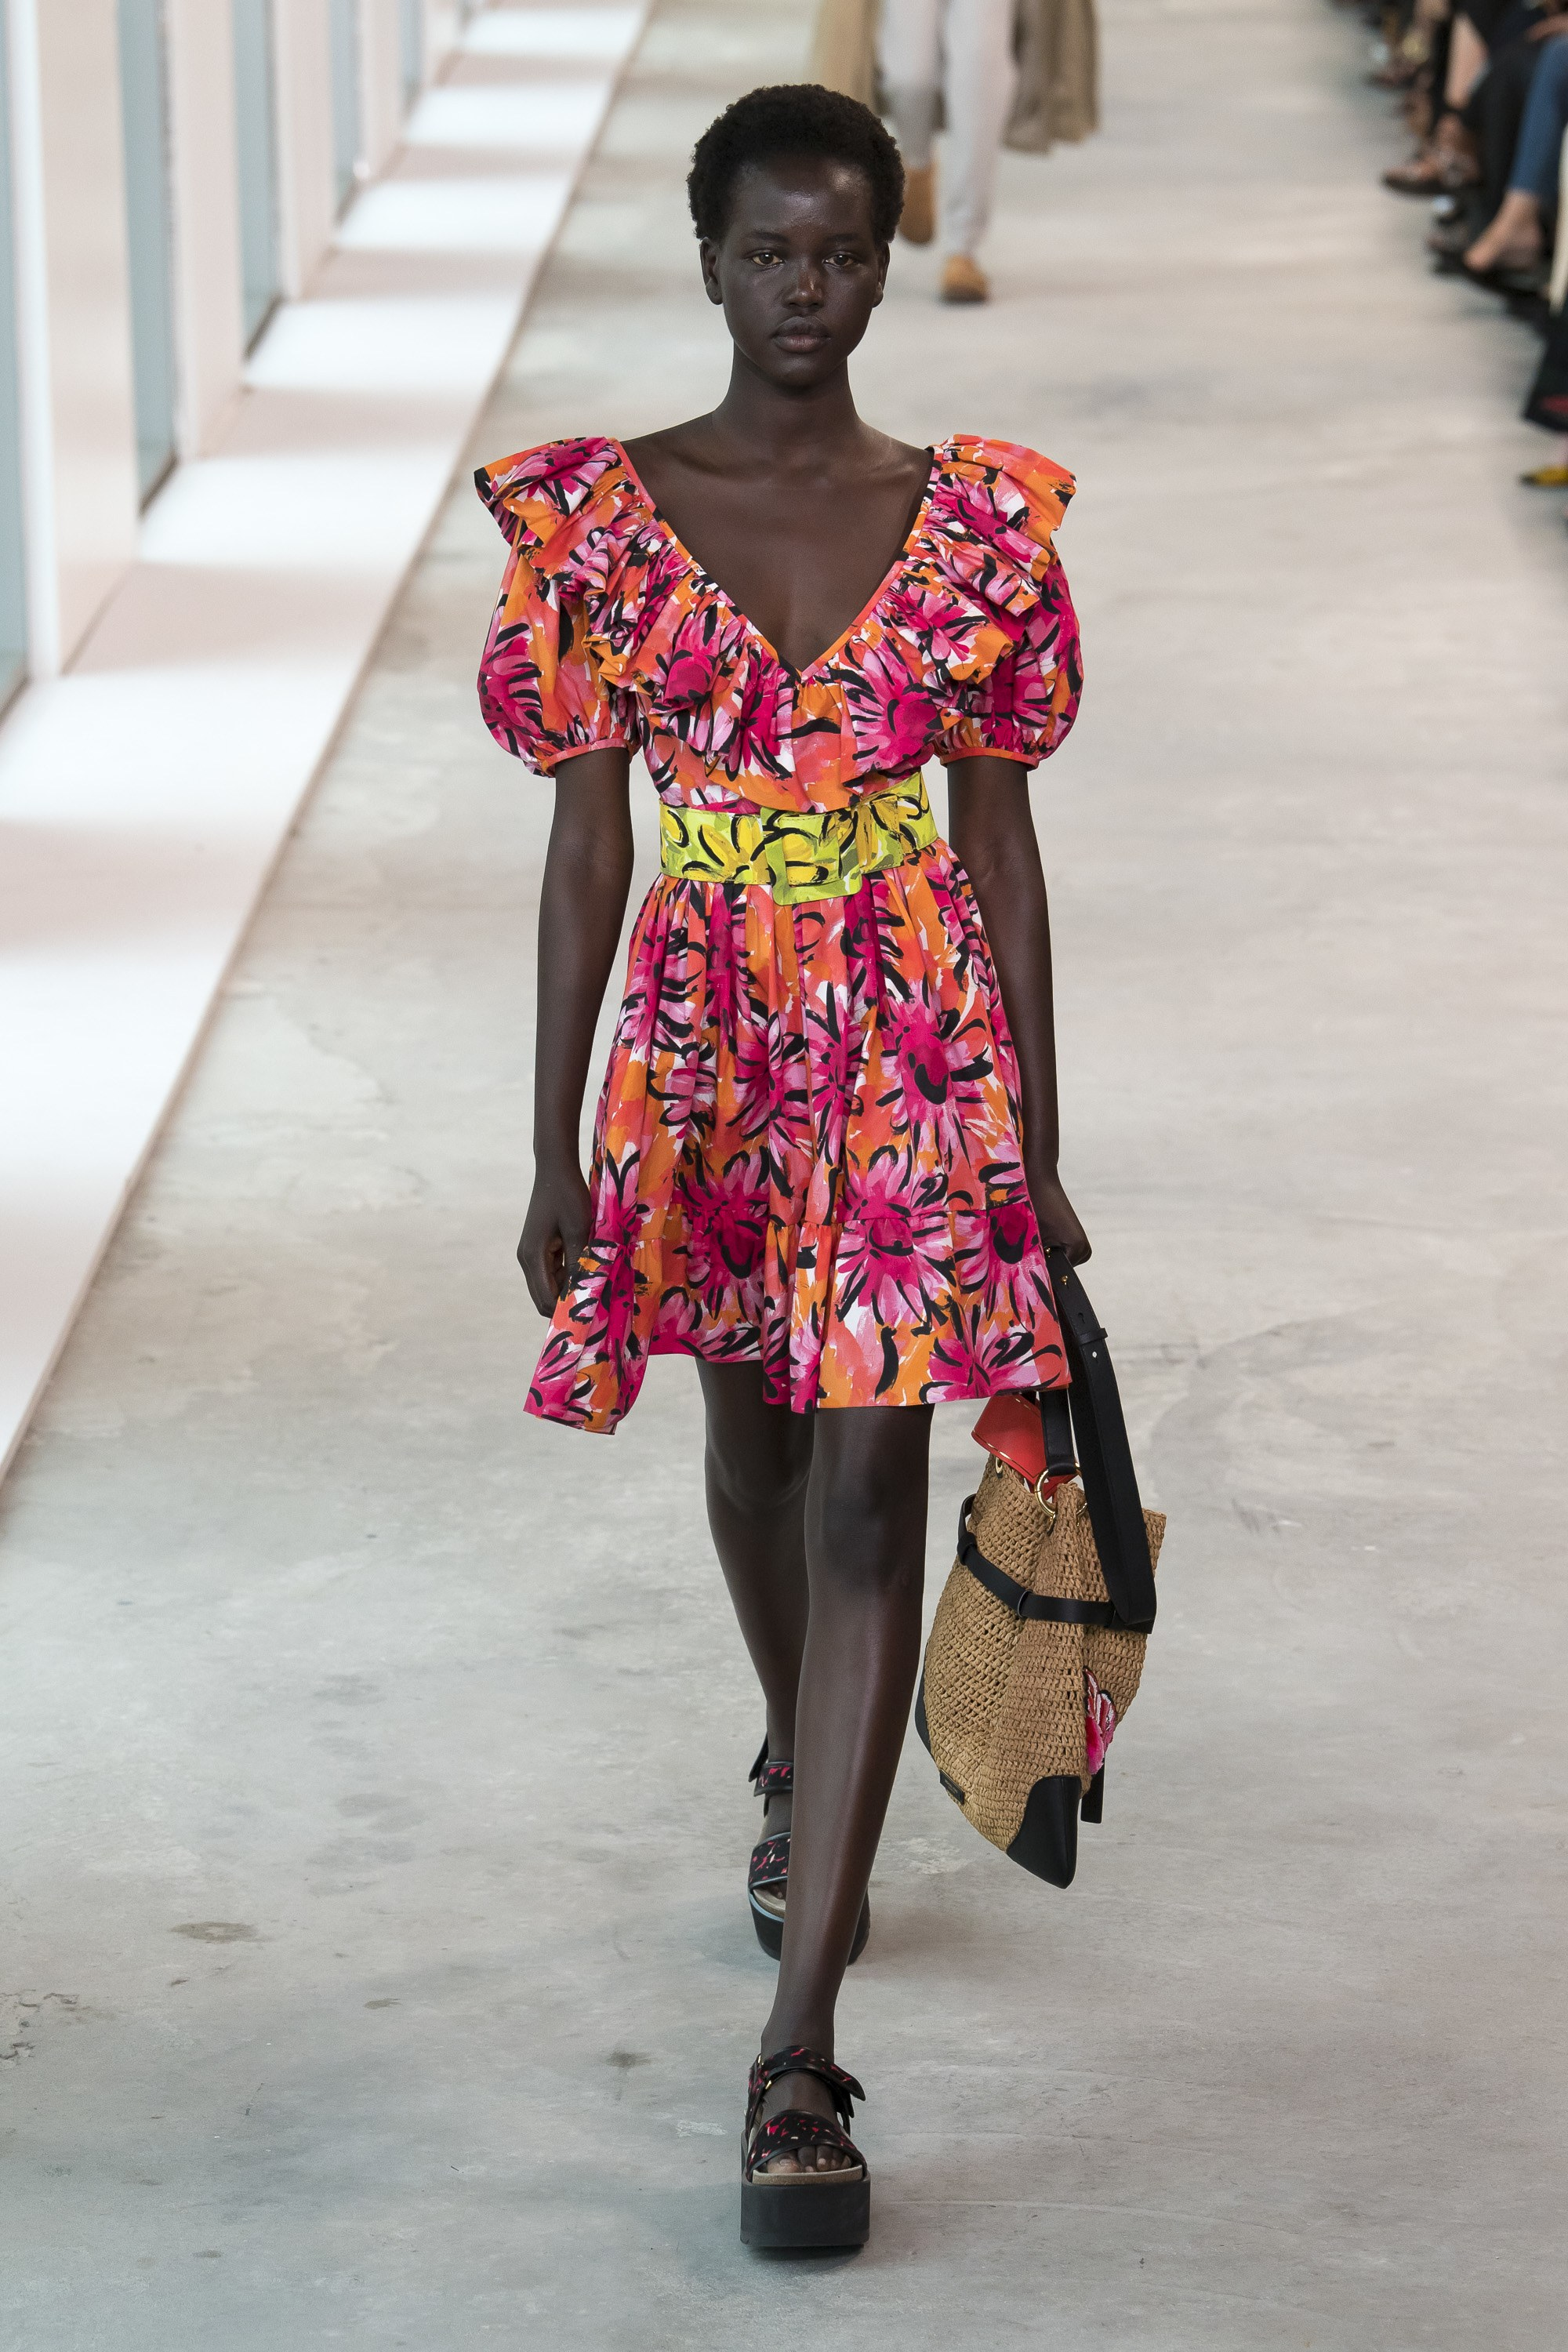 Spring Summer 2019 Fashion Week Coverage: Top 10 Spring ...